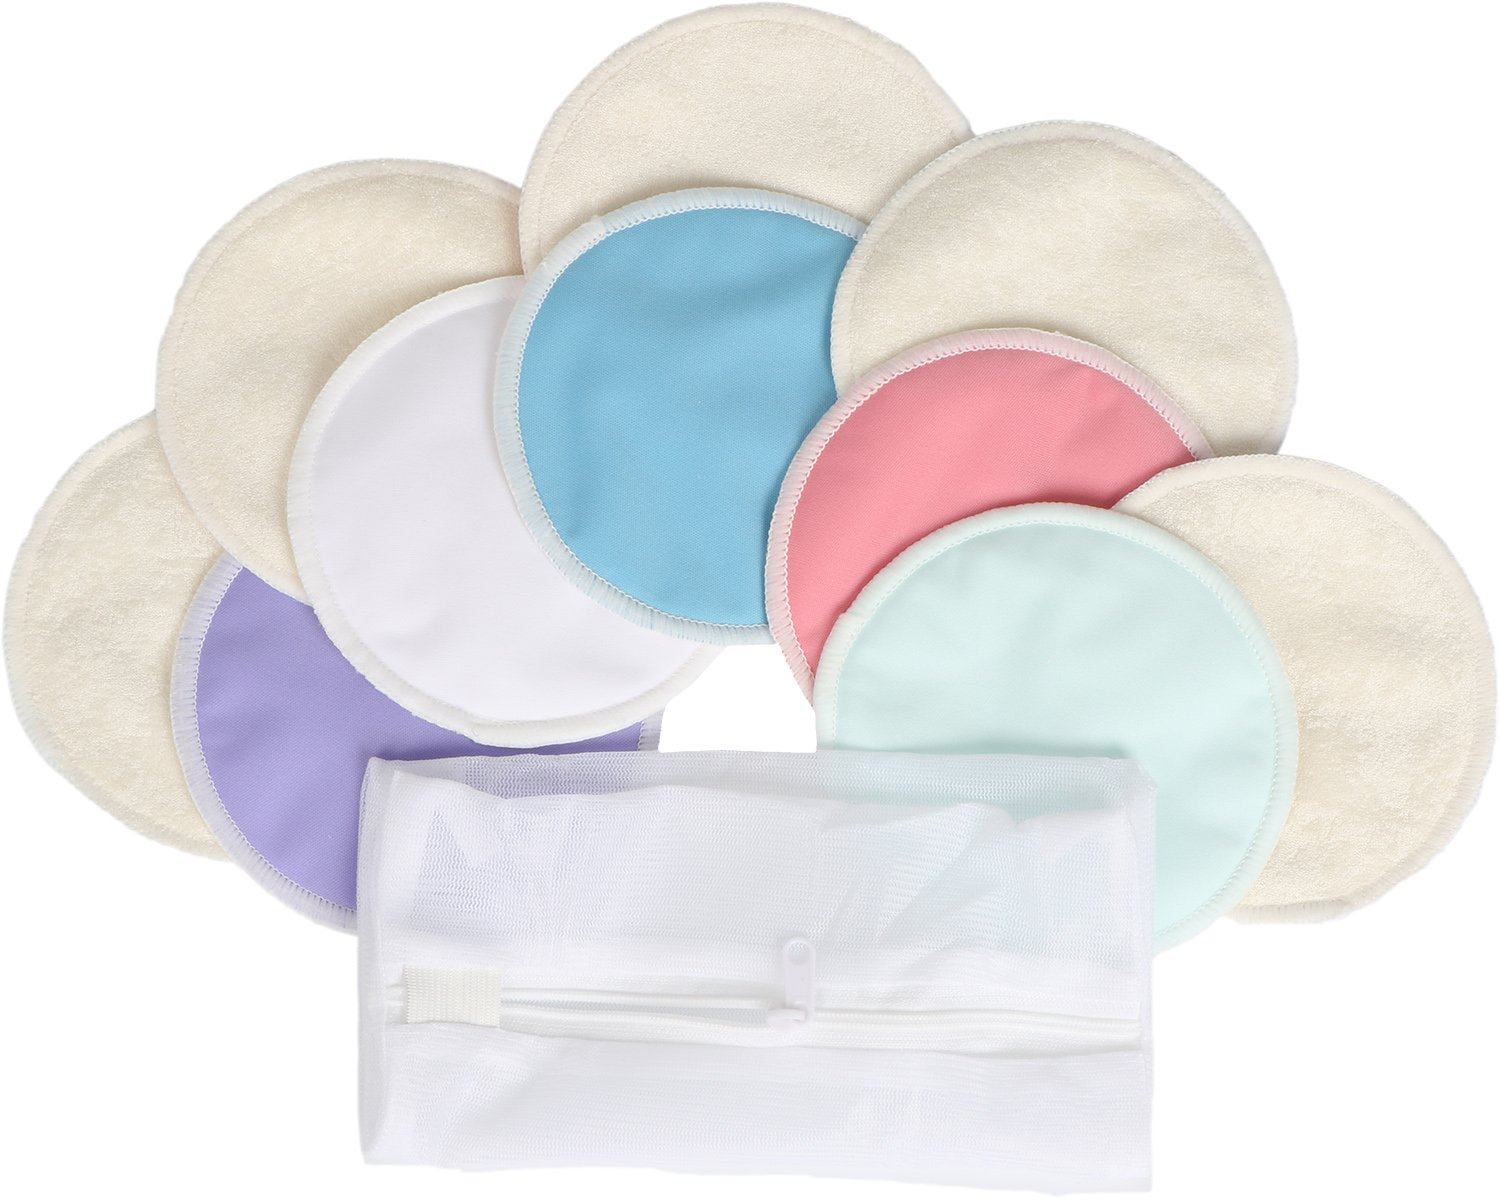 Washable Organic Bamboo Nursing Pads,Reusable Breast Pads Breastfeeding Pads with Laundry Bag,Sizes: M 3.9'',Multi-Color,Pack of 10